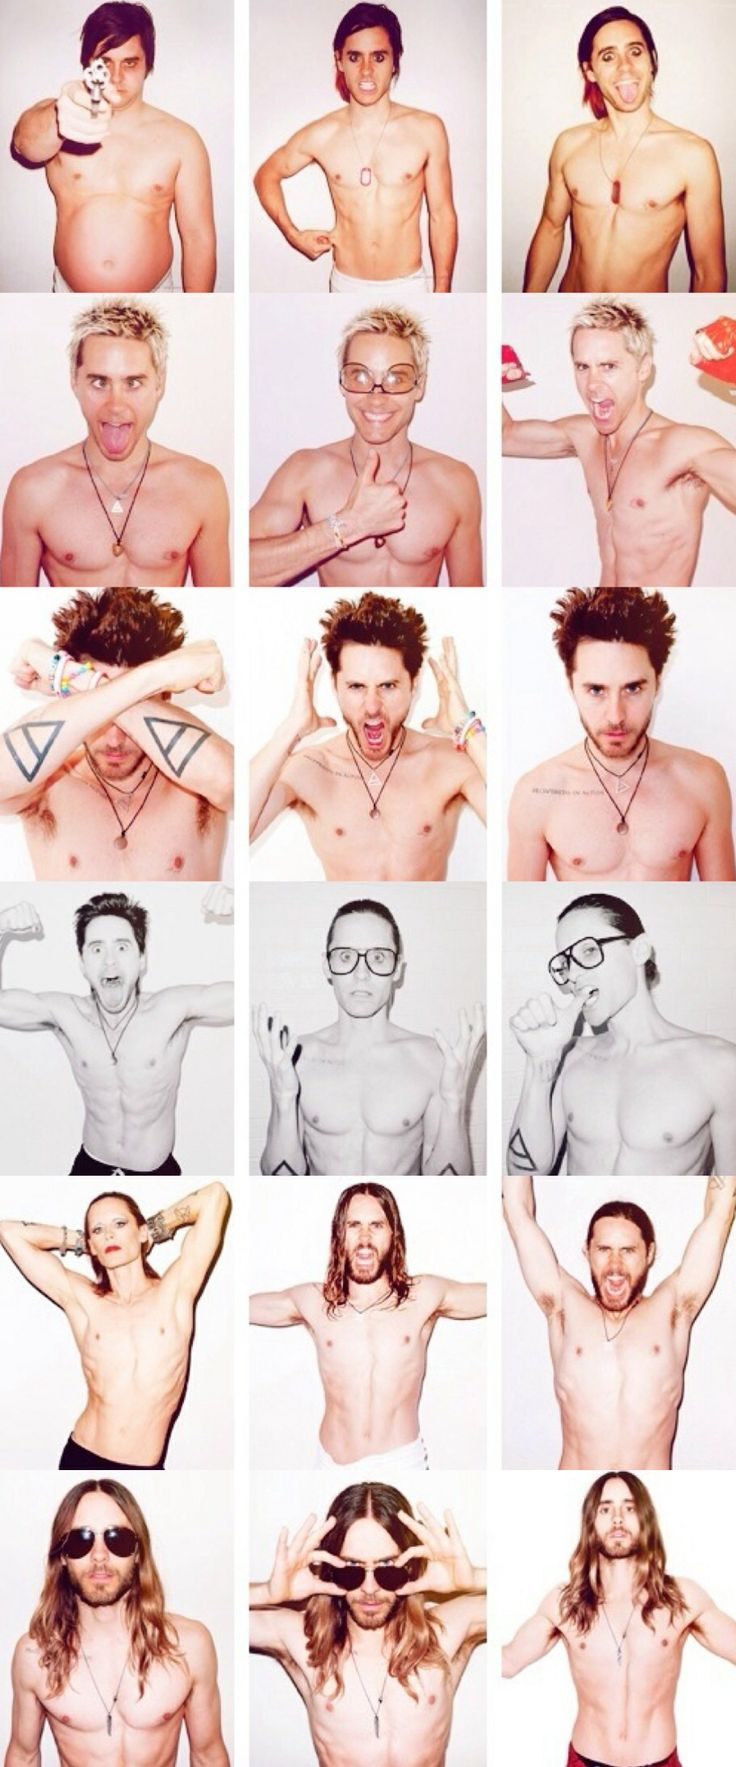 Jared Leto by Terry Richardson. Like a good wine, he's more handsome year after year.